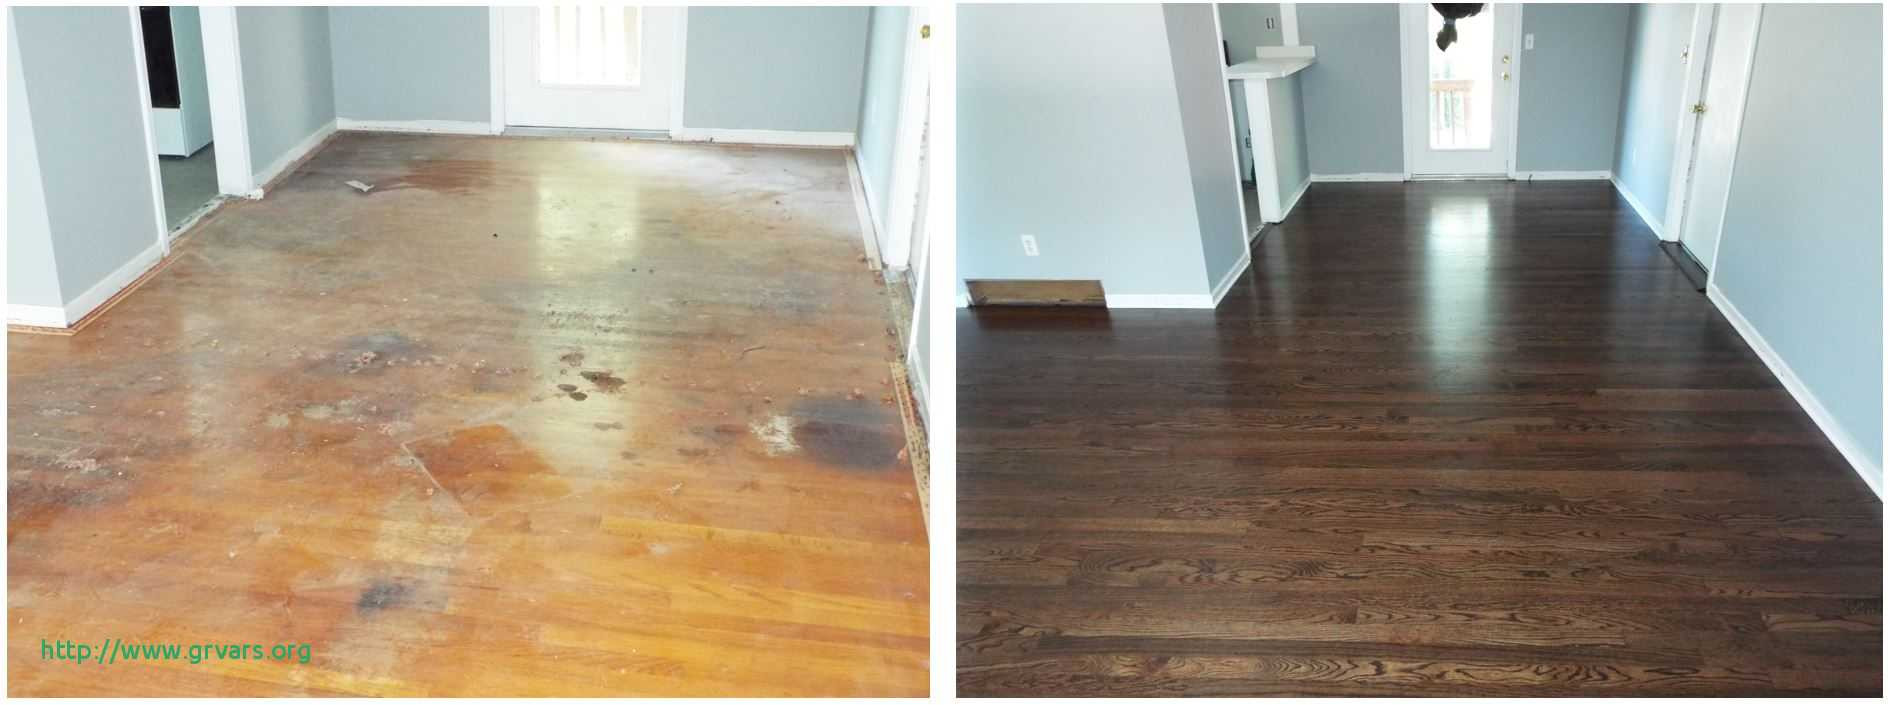 jr hardwood floors of hardwood flooring monmouth county nj nouveau j r hardwood floors with regard to j r hardwood floors l l c home hardwood flooring monmouth county nj luxe hardwood floor refinishing monmouth county nj hardwood floor